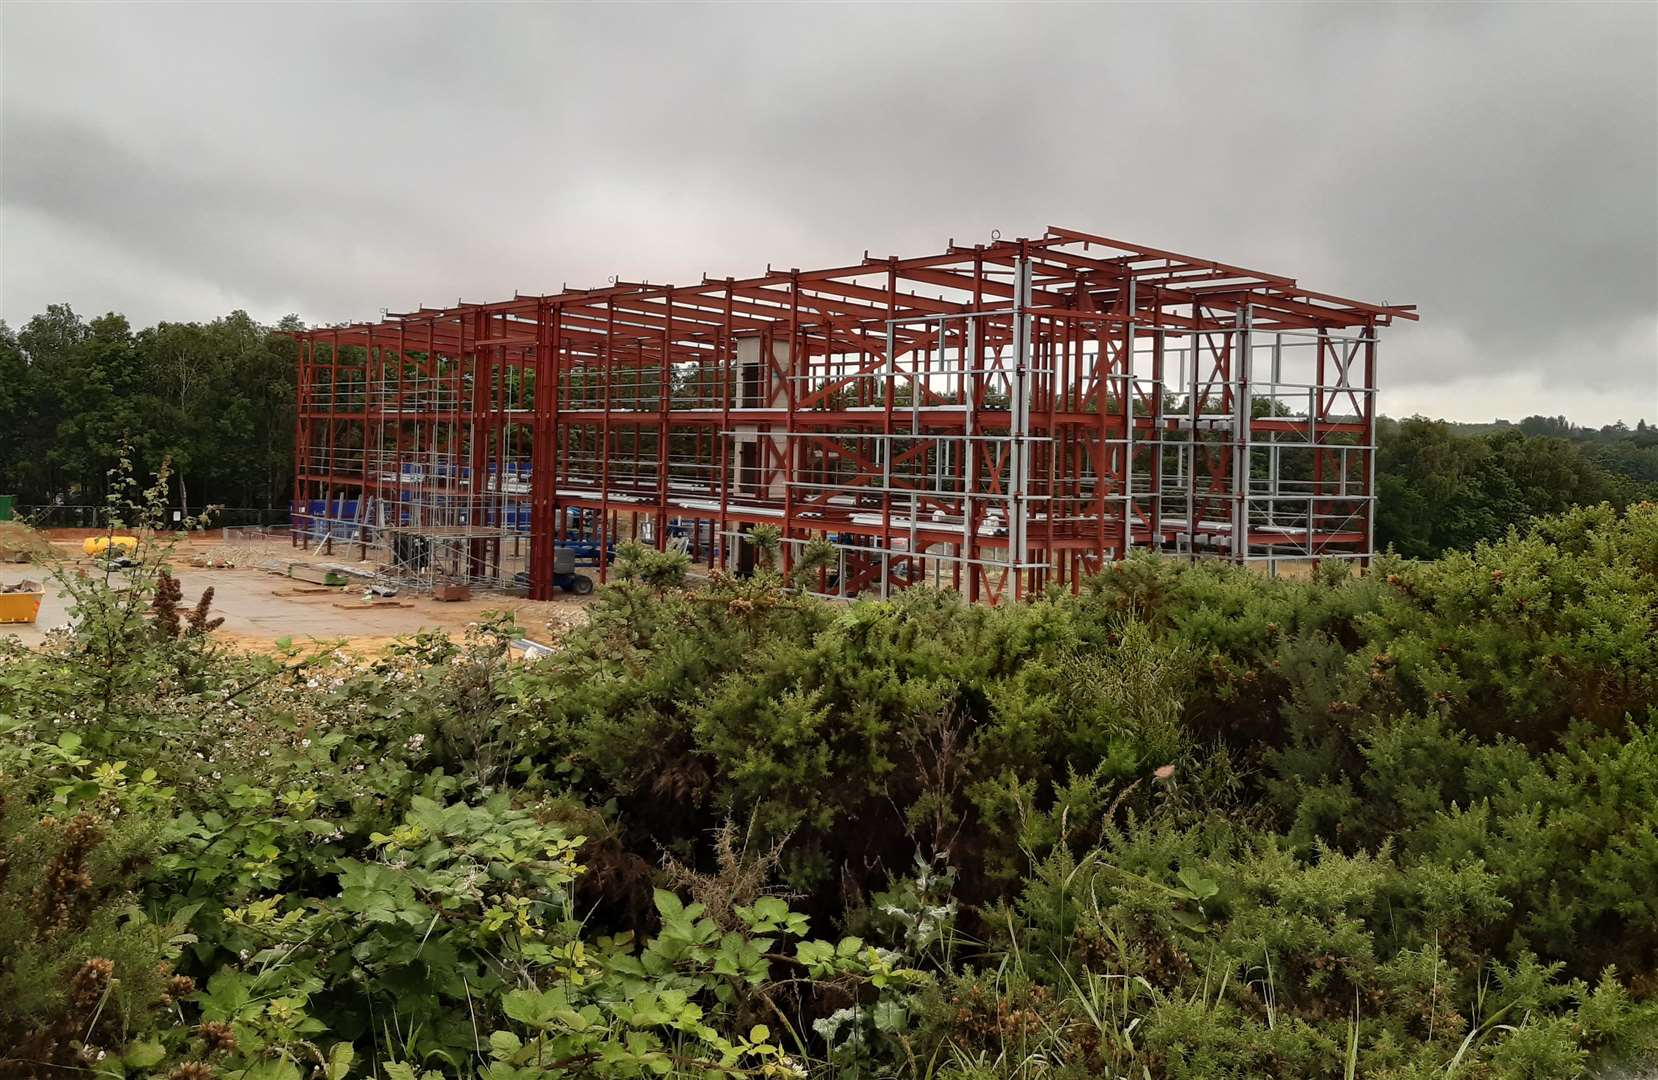 A new three-storey office block is currently being constructed off Trinity Road on the development site